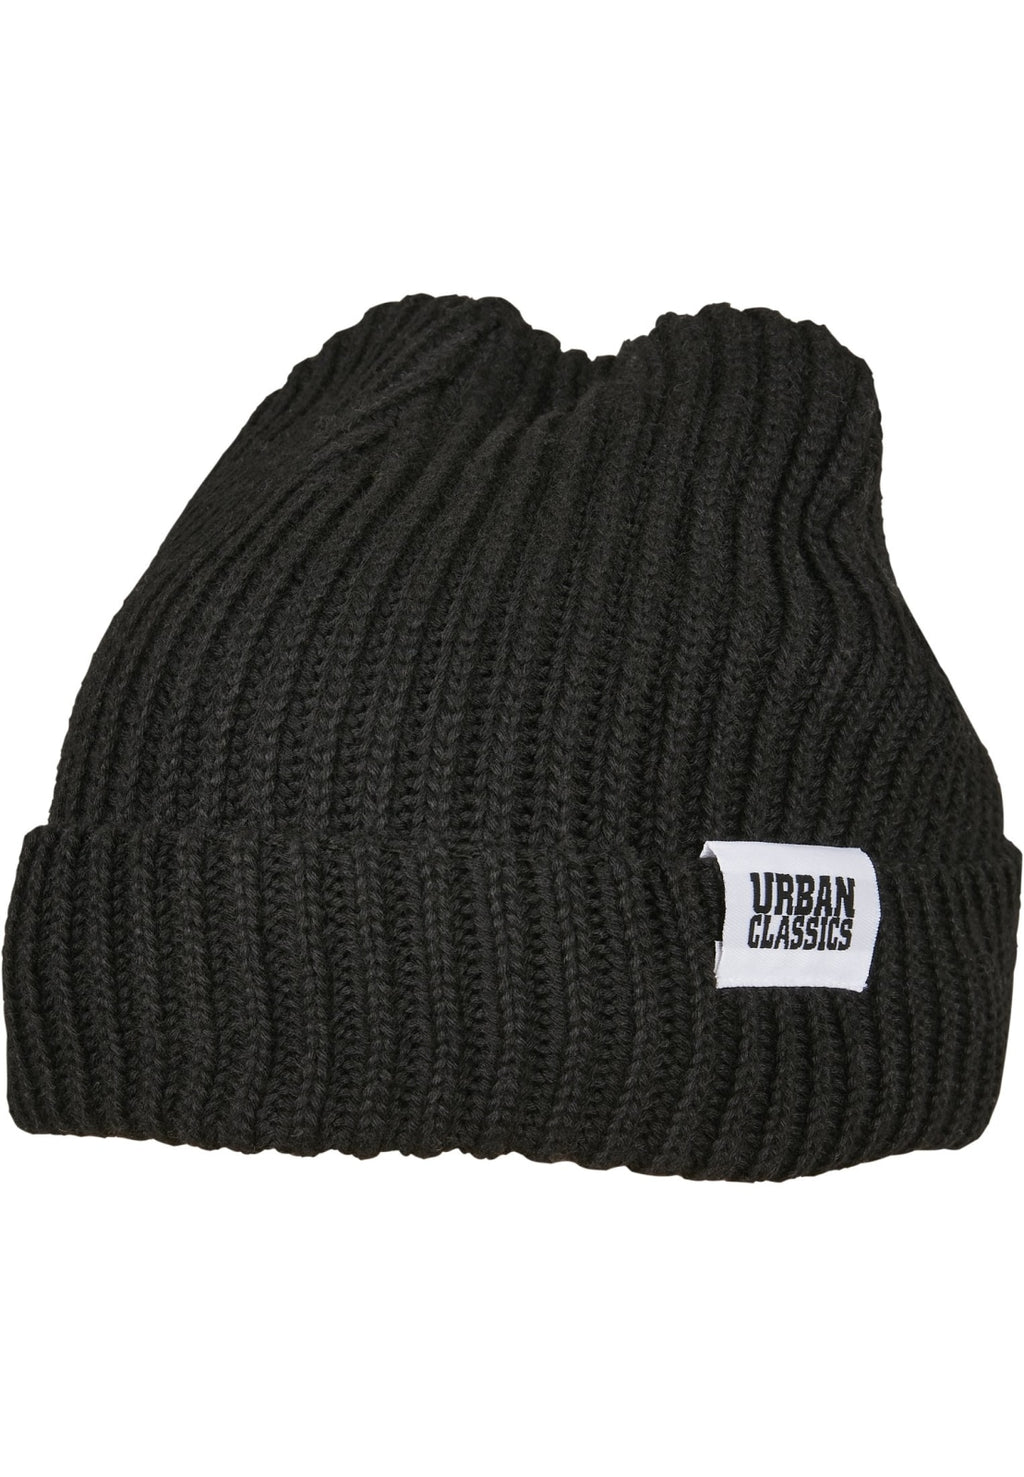 Recycled Yarn Fisherman Beanie Black Headwear Urban Classics